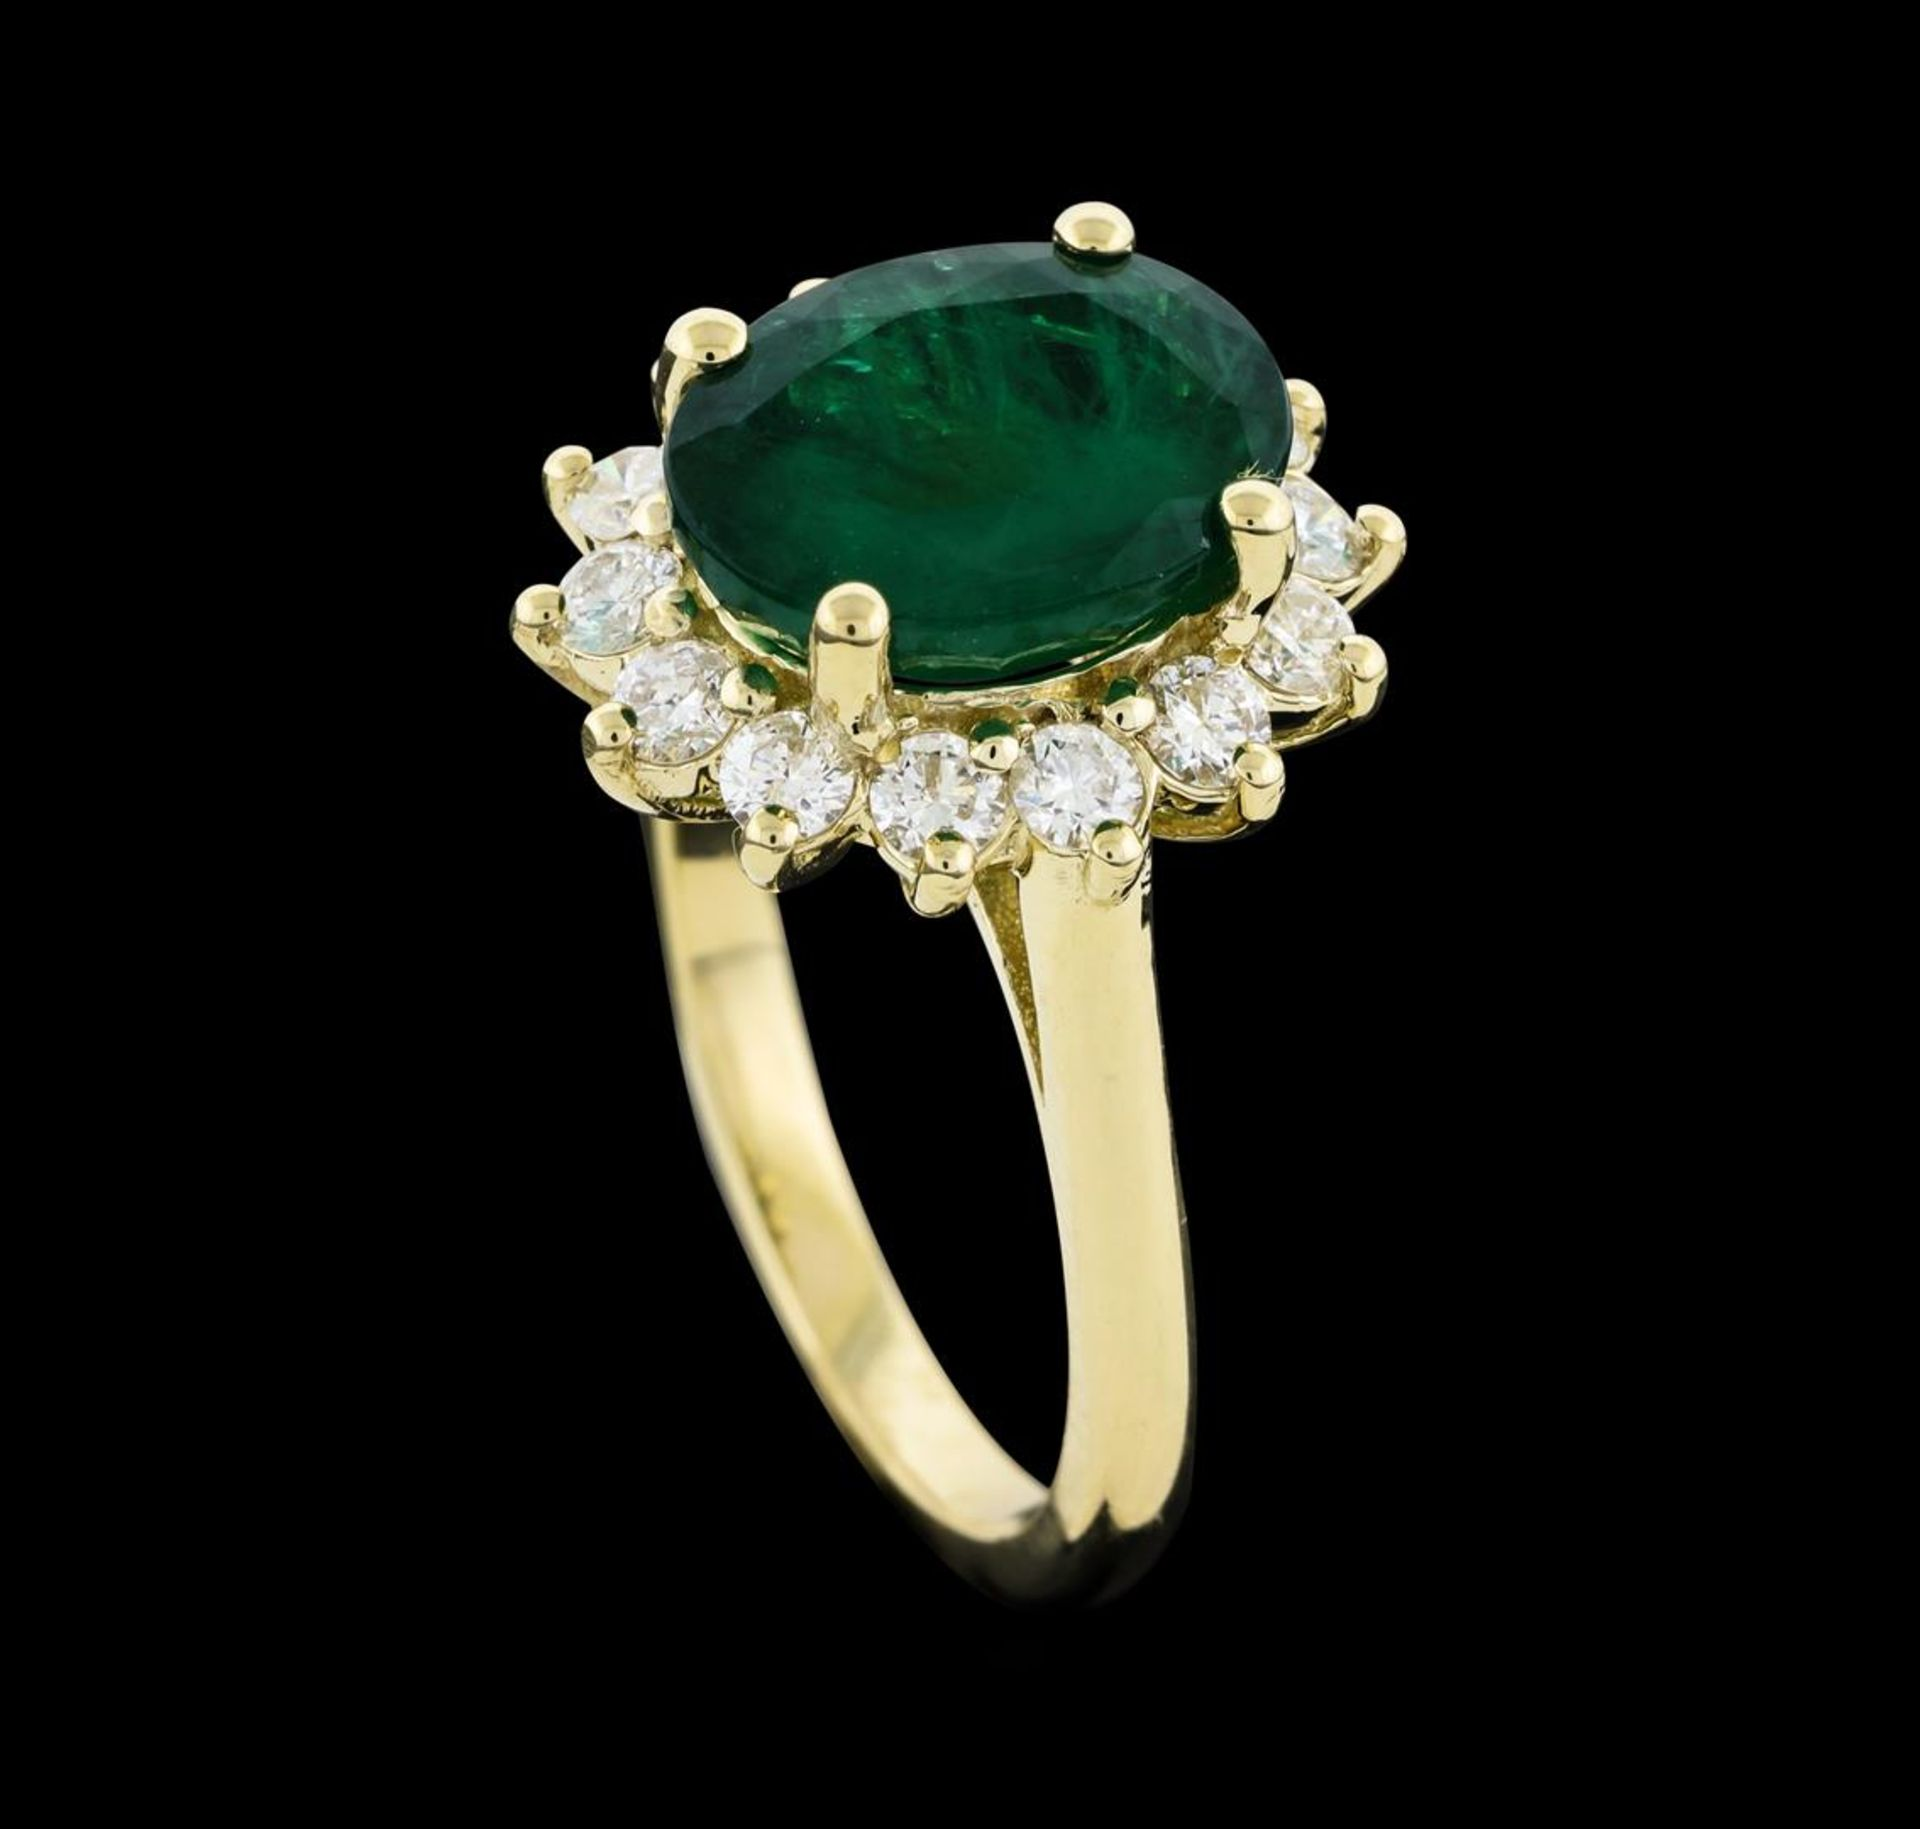 3.40 ctw Emerald and Diamond Ring - 14KT Yellow Gold - Image 4 of 5